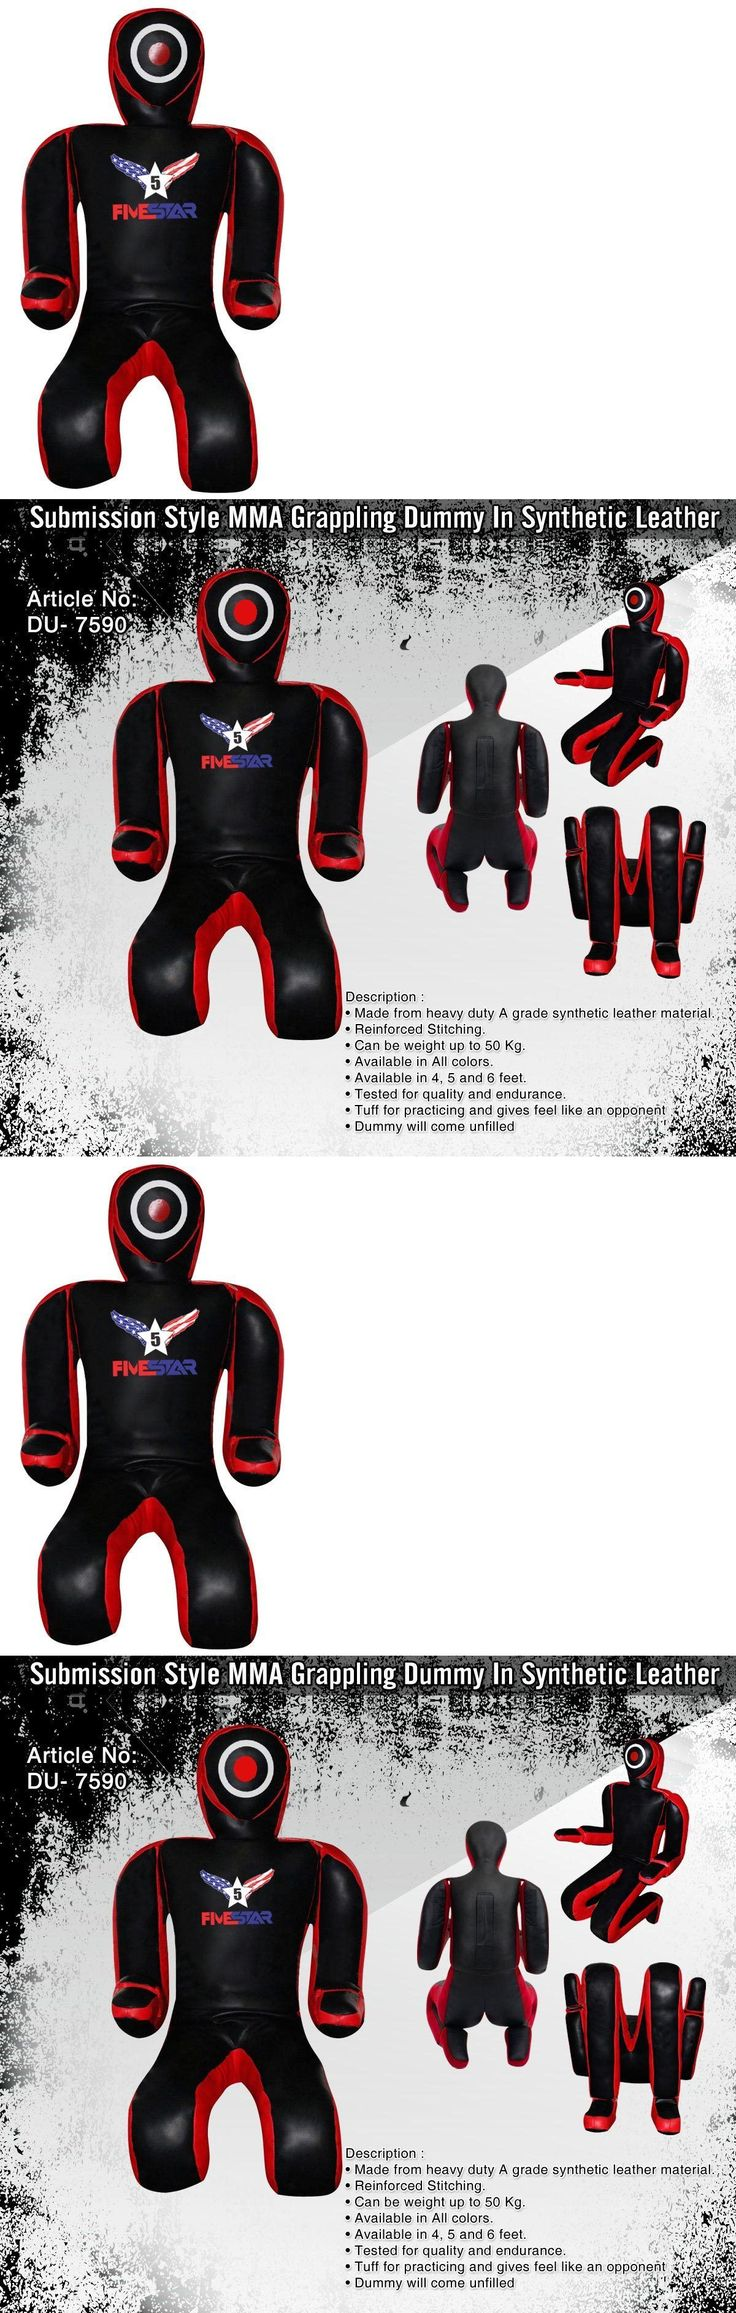 Dummies 179786: Grappling Dummy For Submission, Bjj, Mma | Synthetic Leather BUY IT NOW ONLY: $89.99